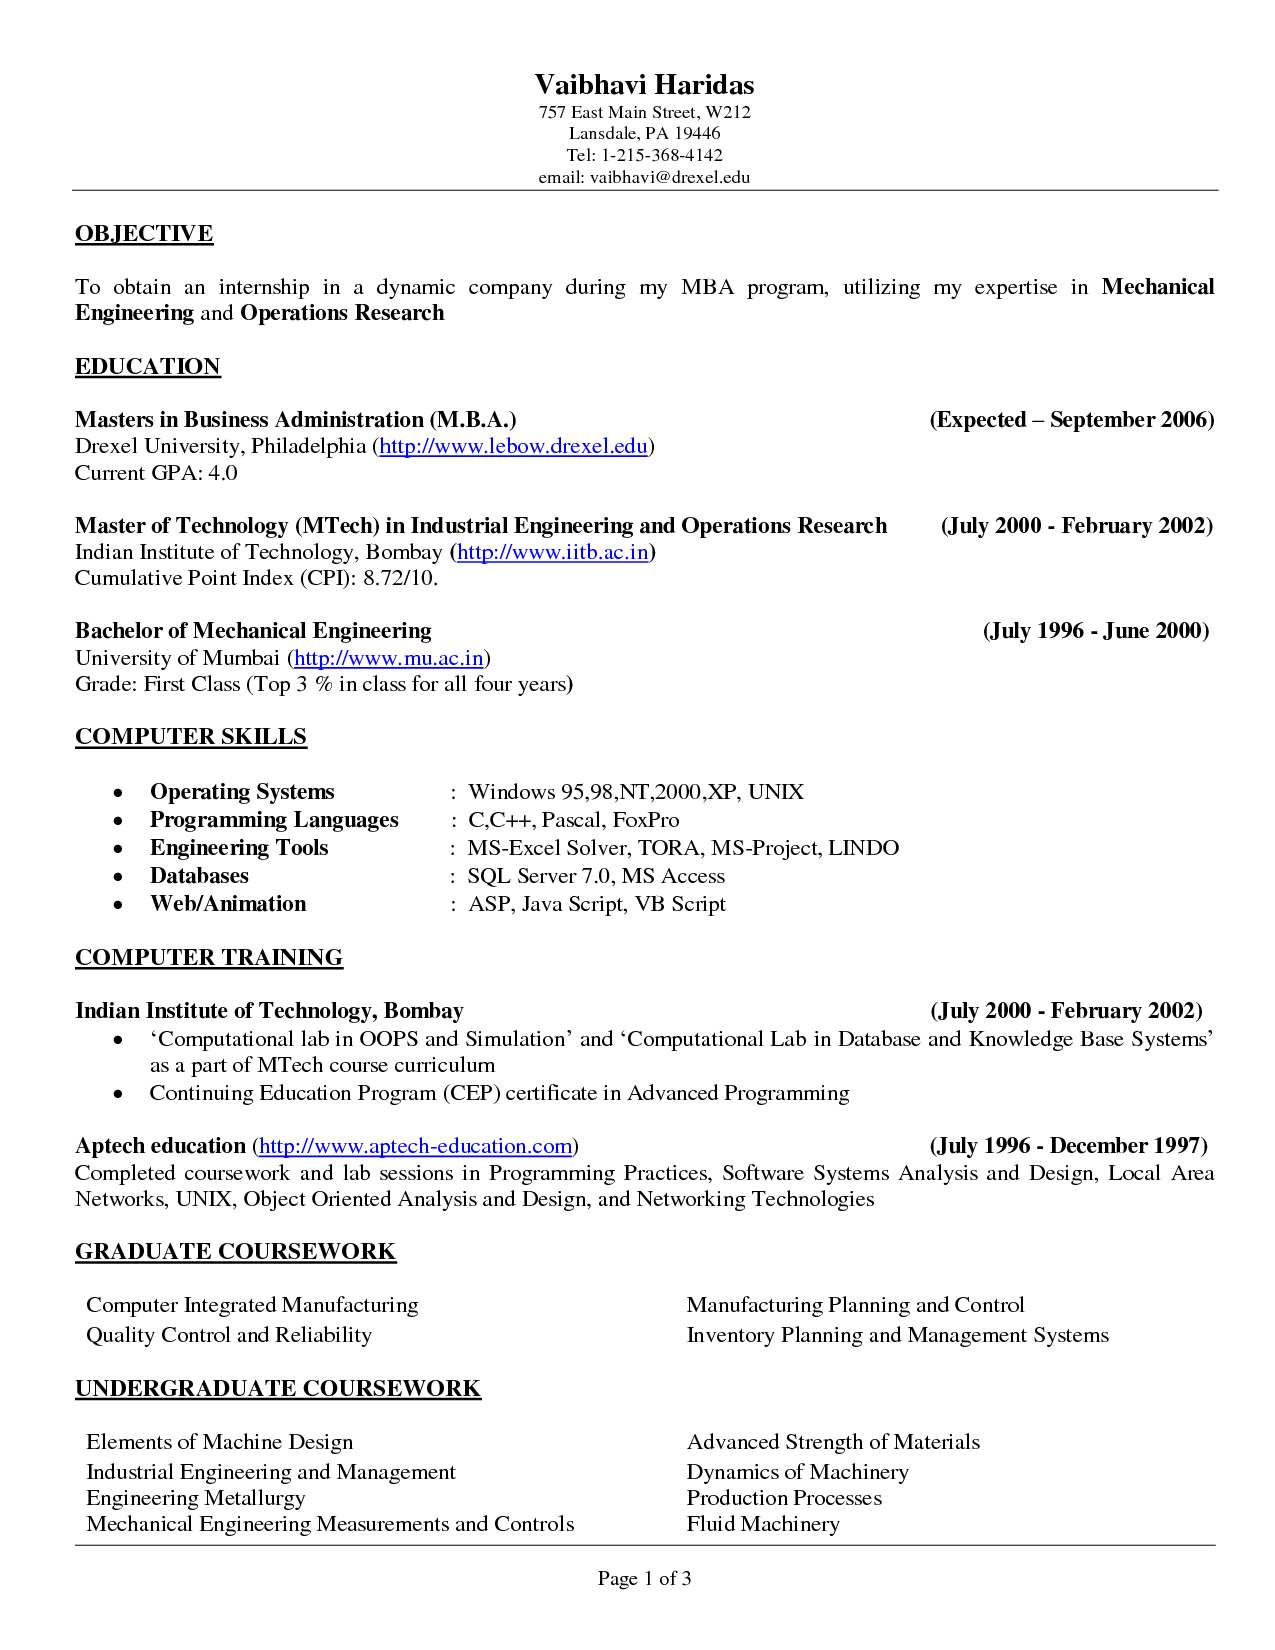 Resume Objective Ideas Resume Objective Example Best Templateresume Objective Examples